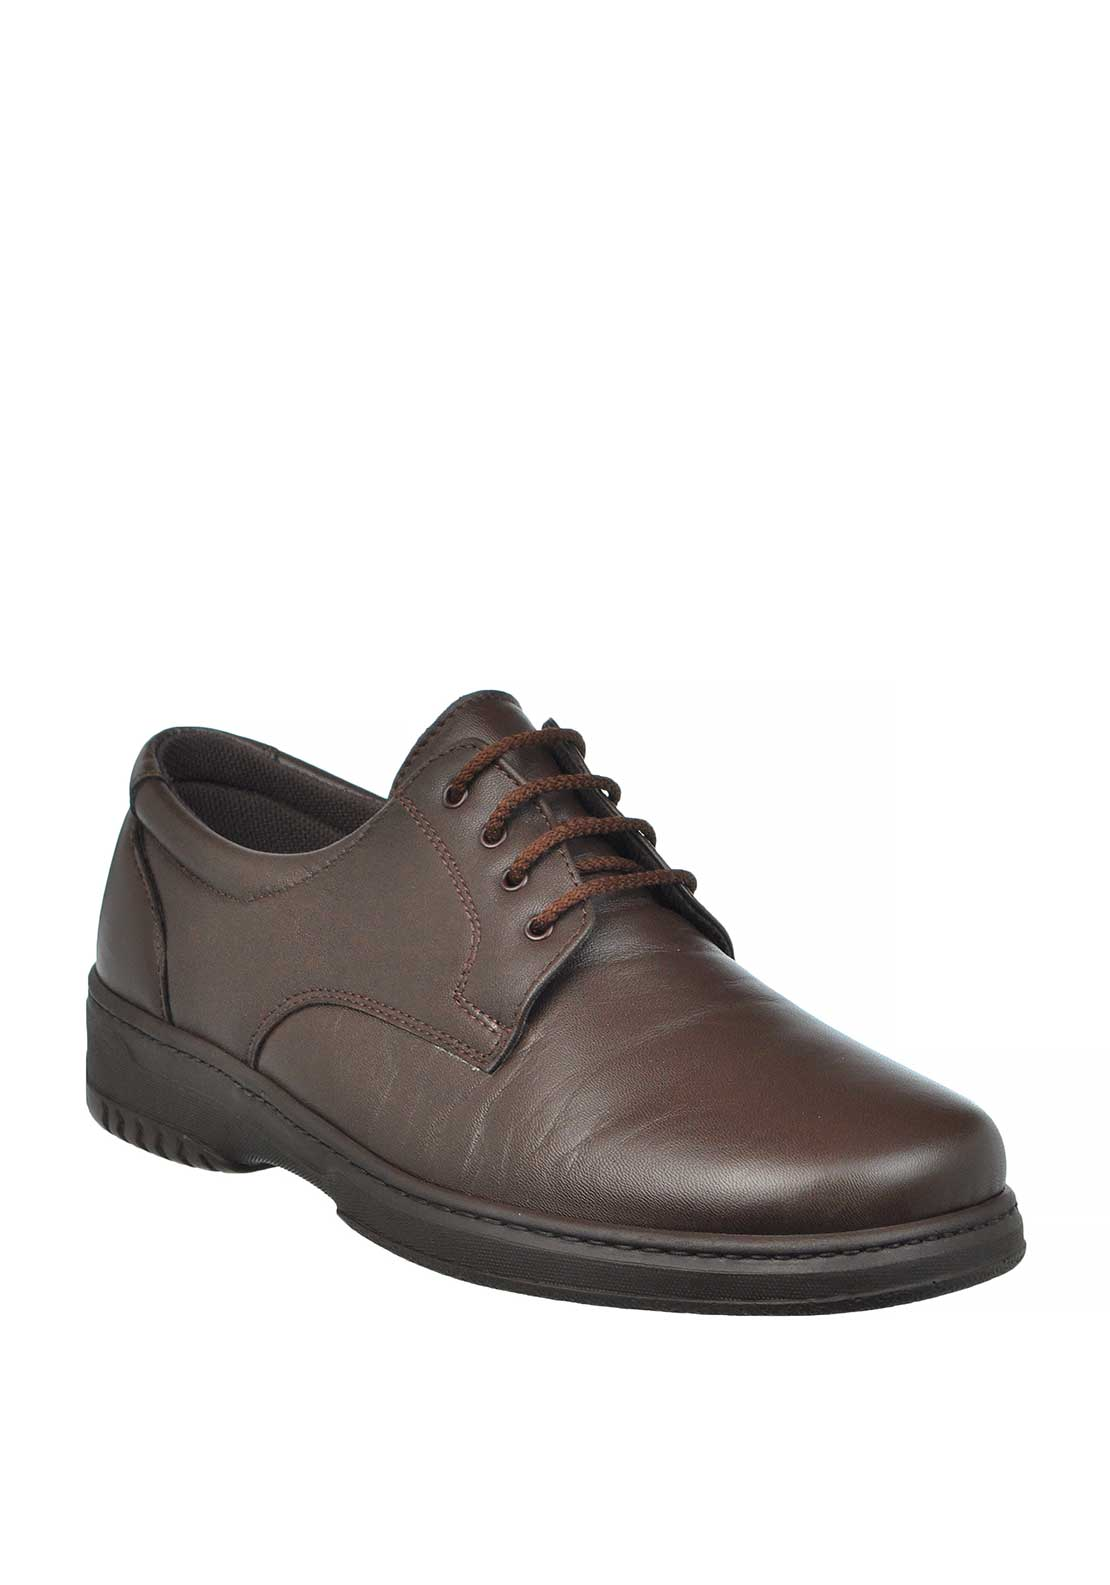 Pinoso Mens Leather Diabetic Laced Shoes, Brown